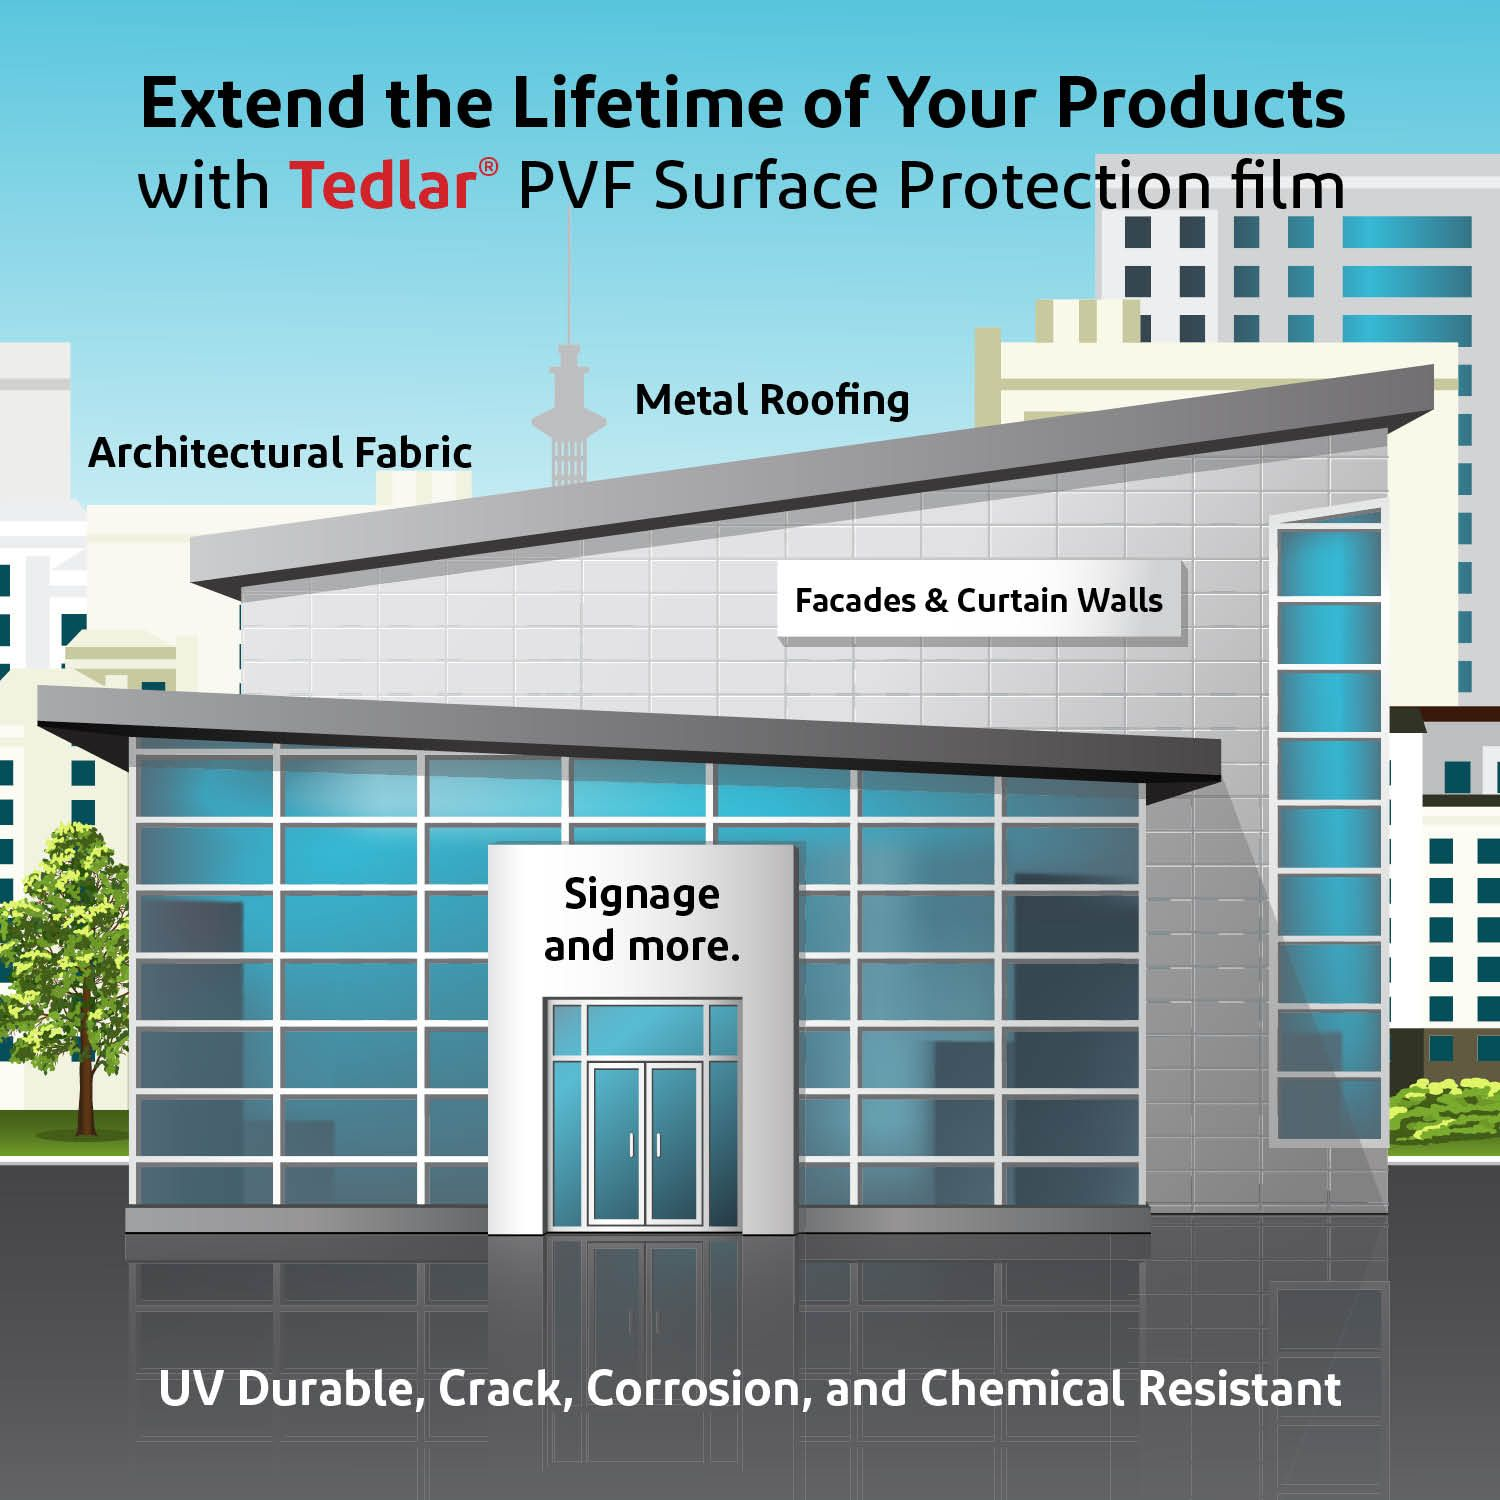 Extend the lifetime of your products